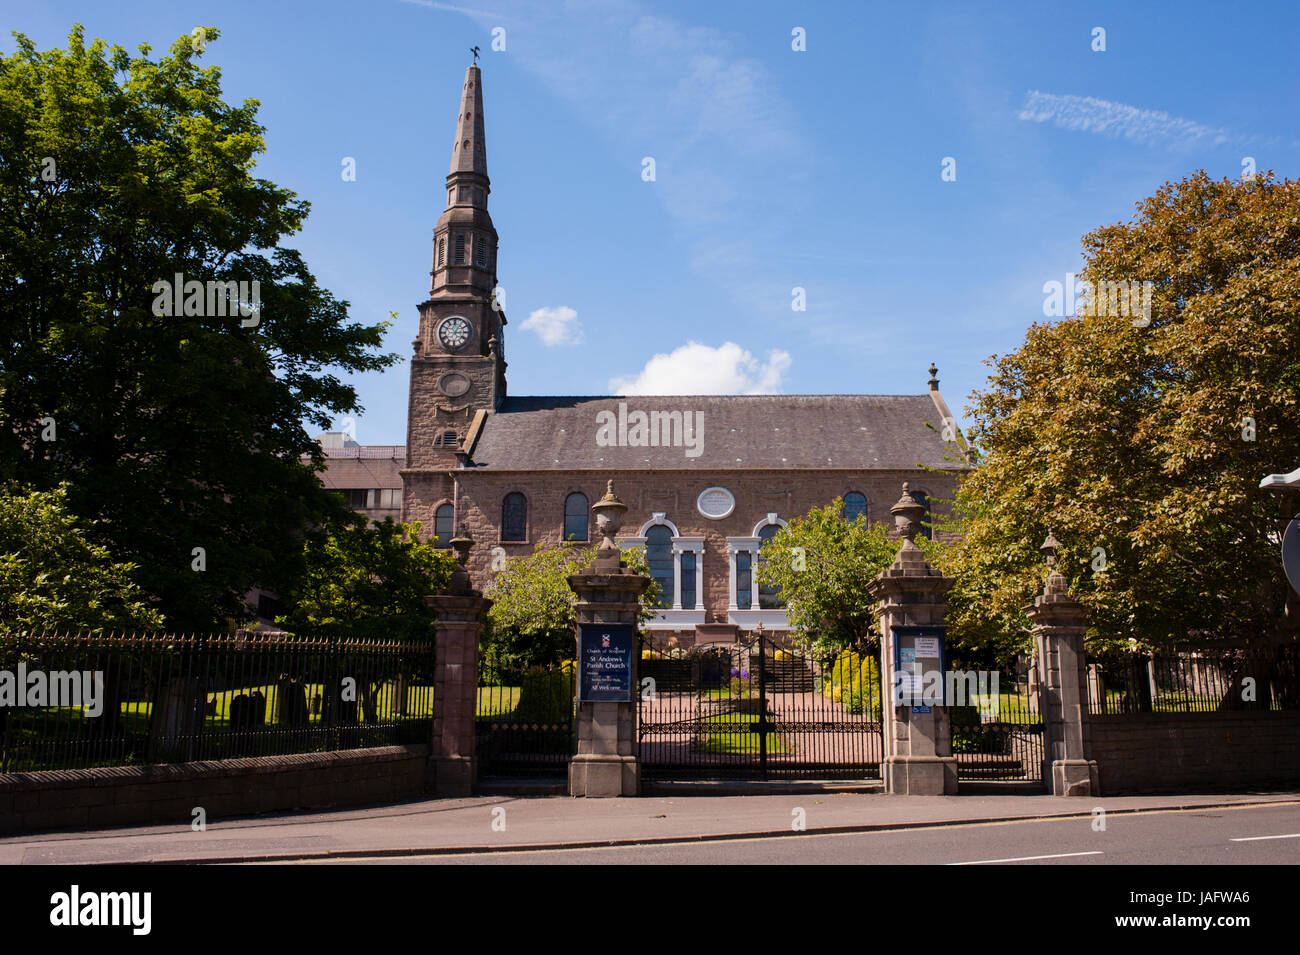 Church of Scotland Saint Andrew's Parish Church. Dundee, Scotland.  Situated on the north bank of Firth of Tay - Stock Image